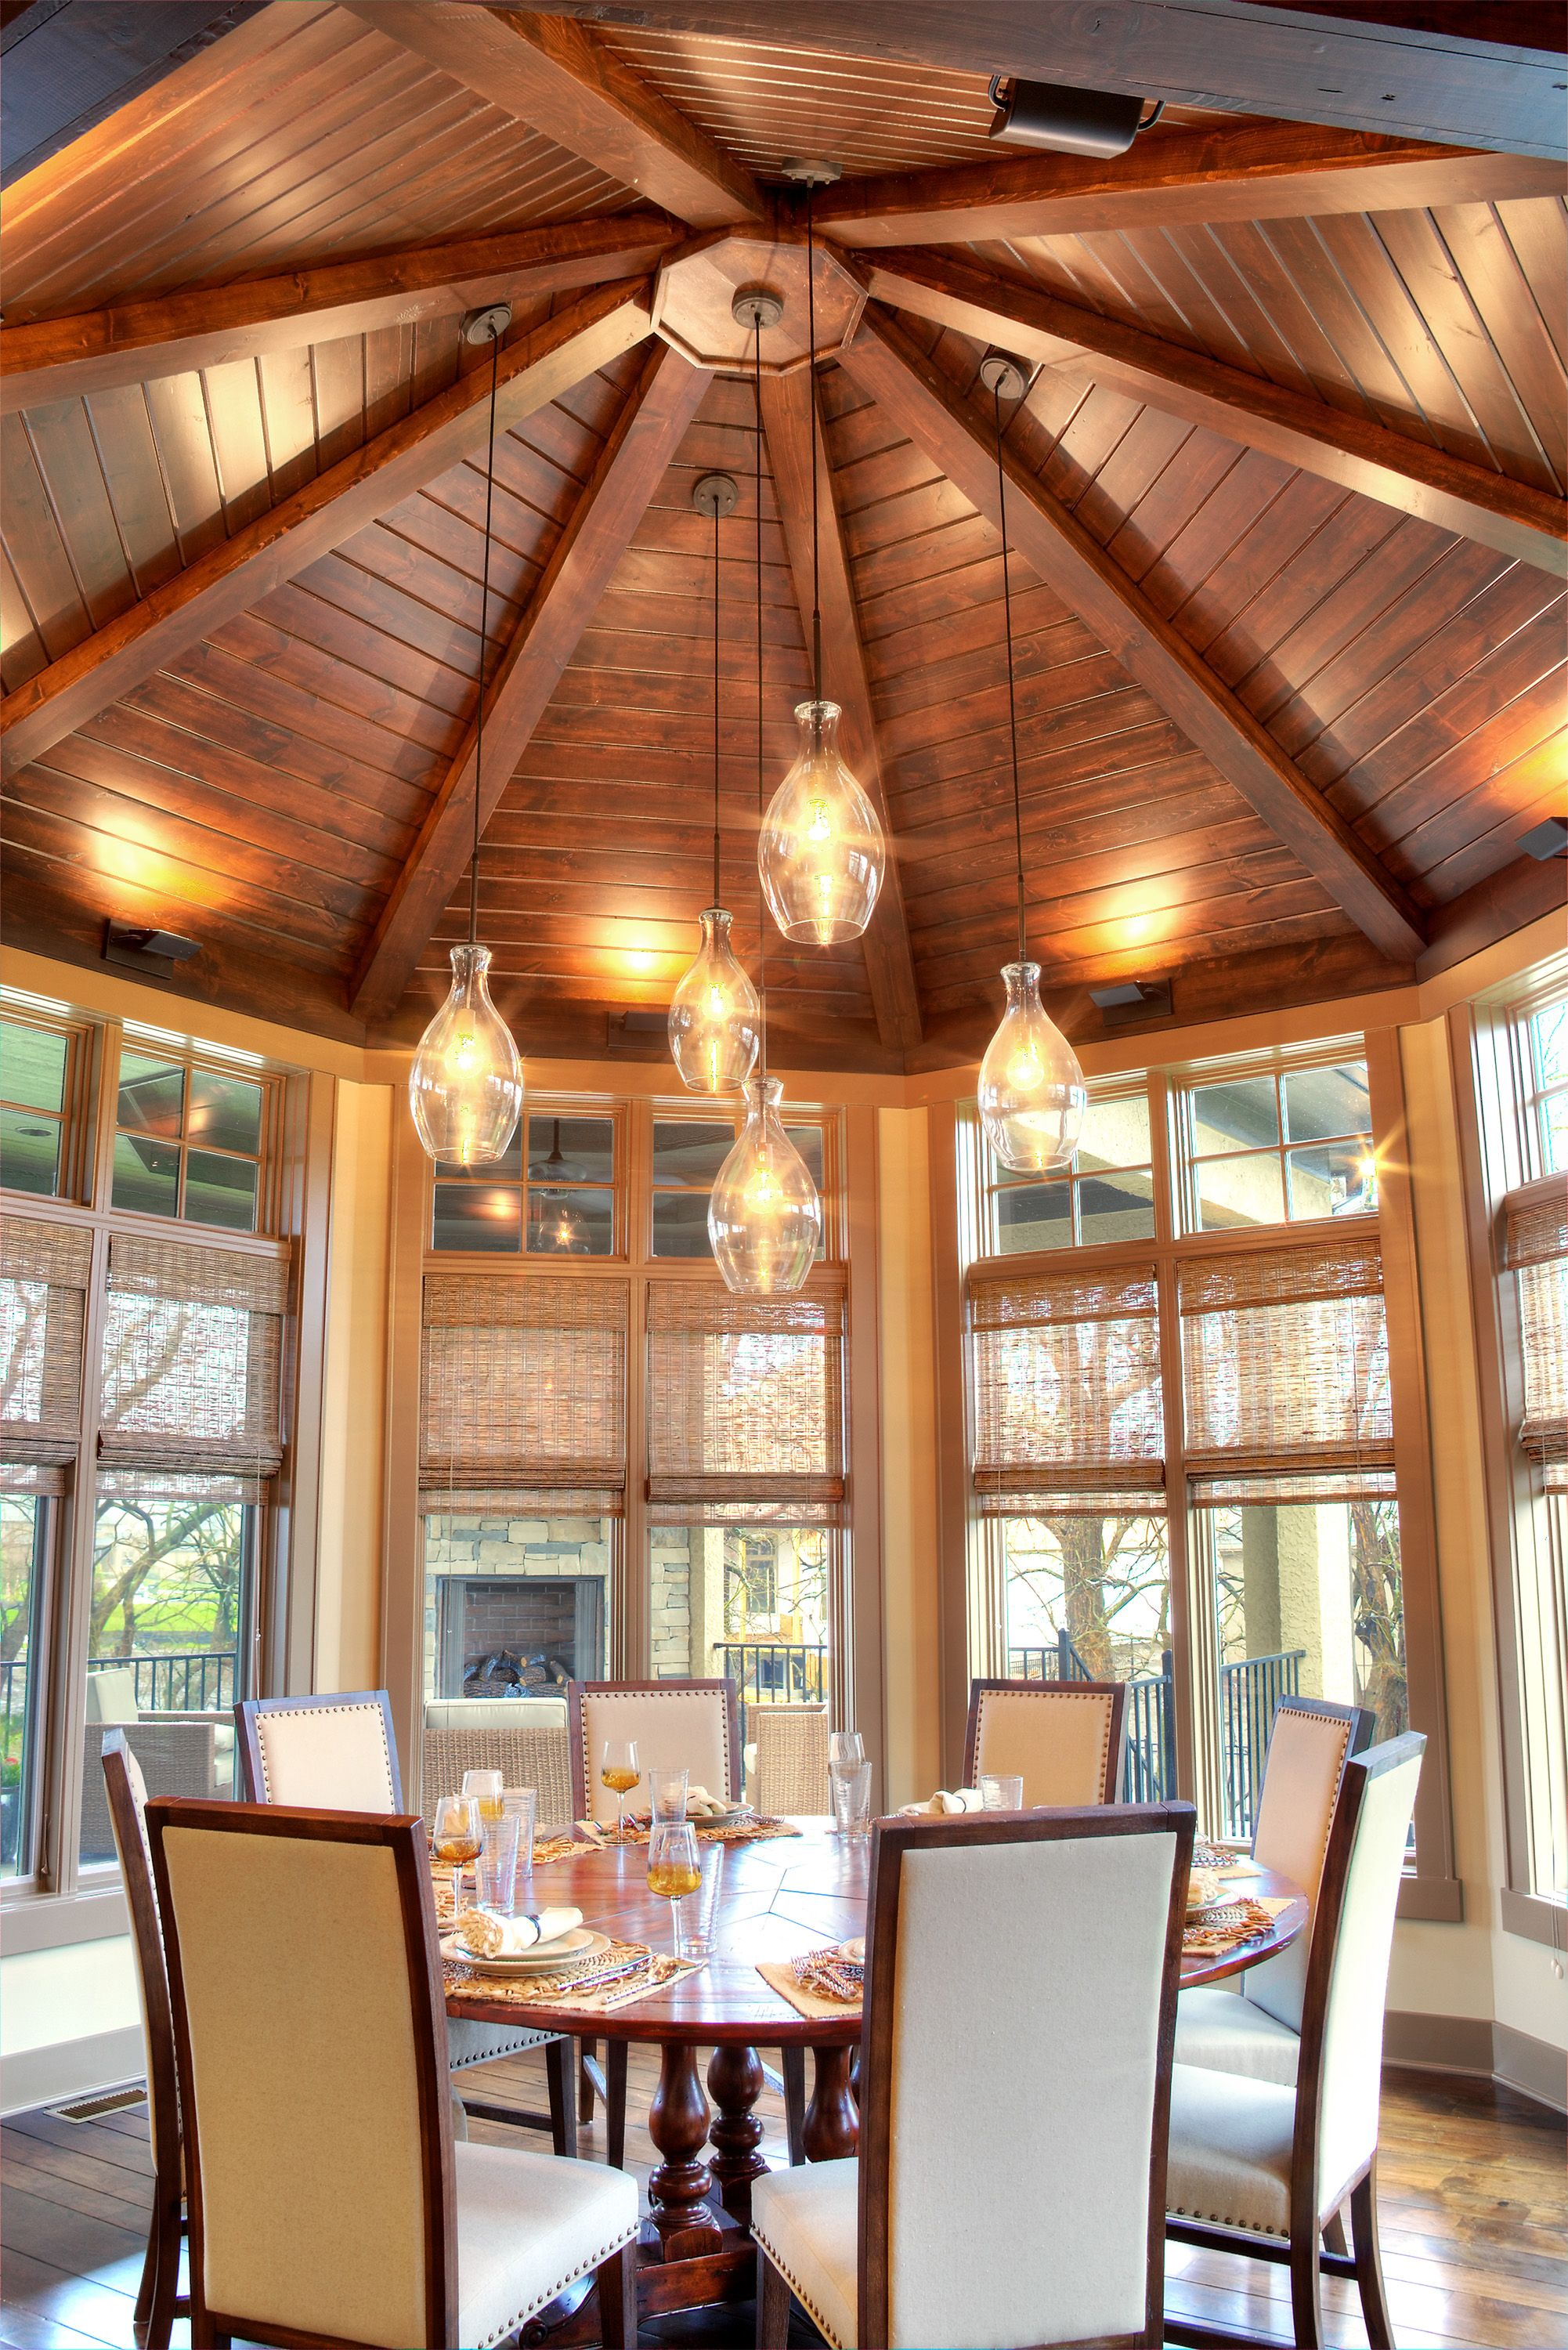 This amazing octagonal dining room with a